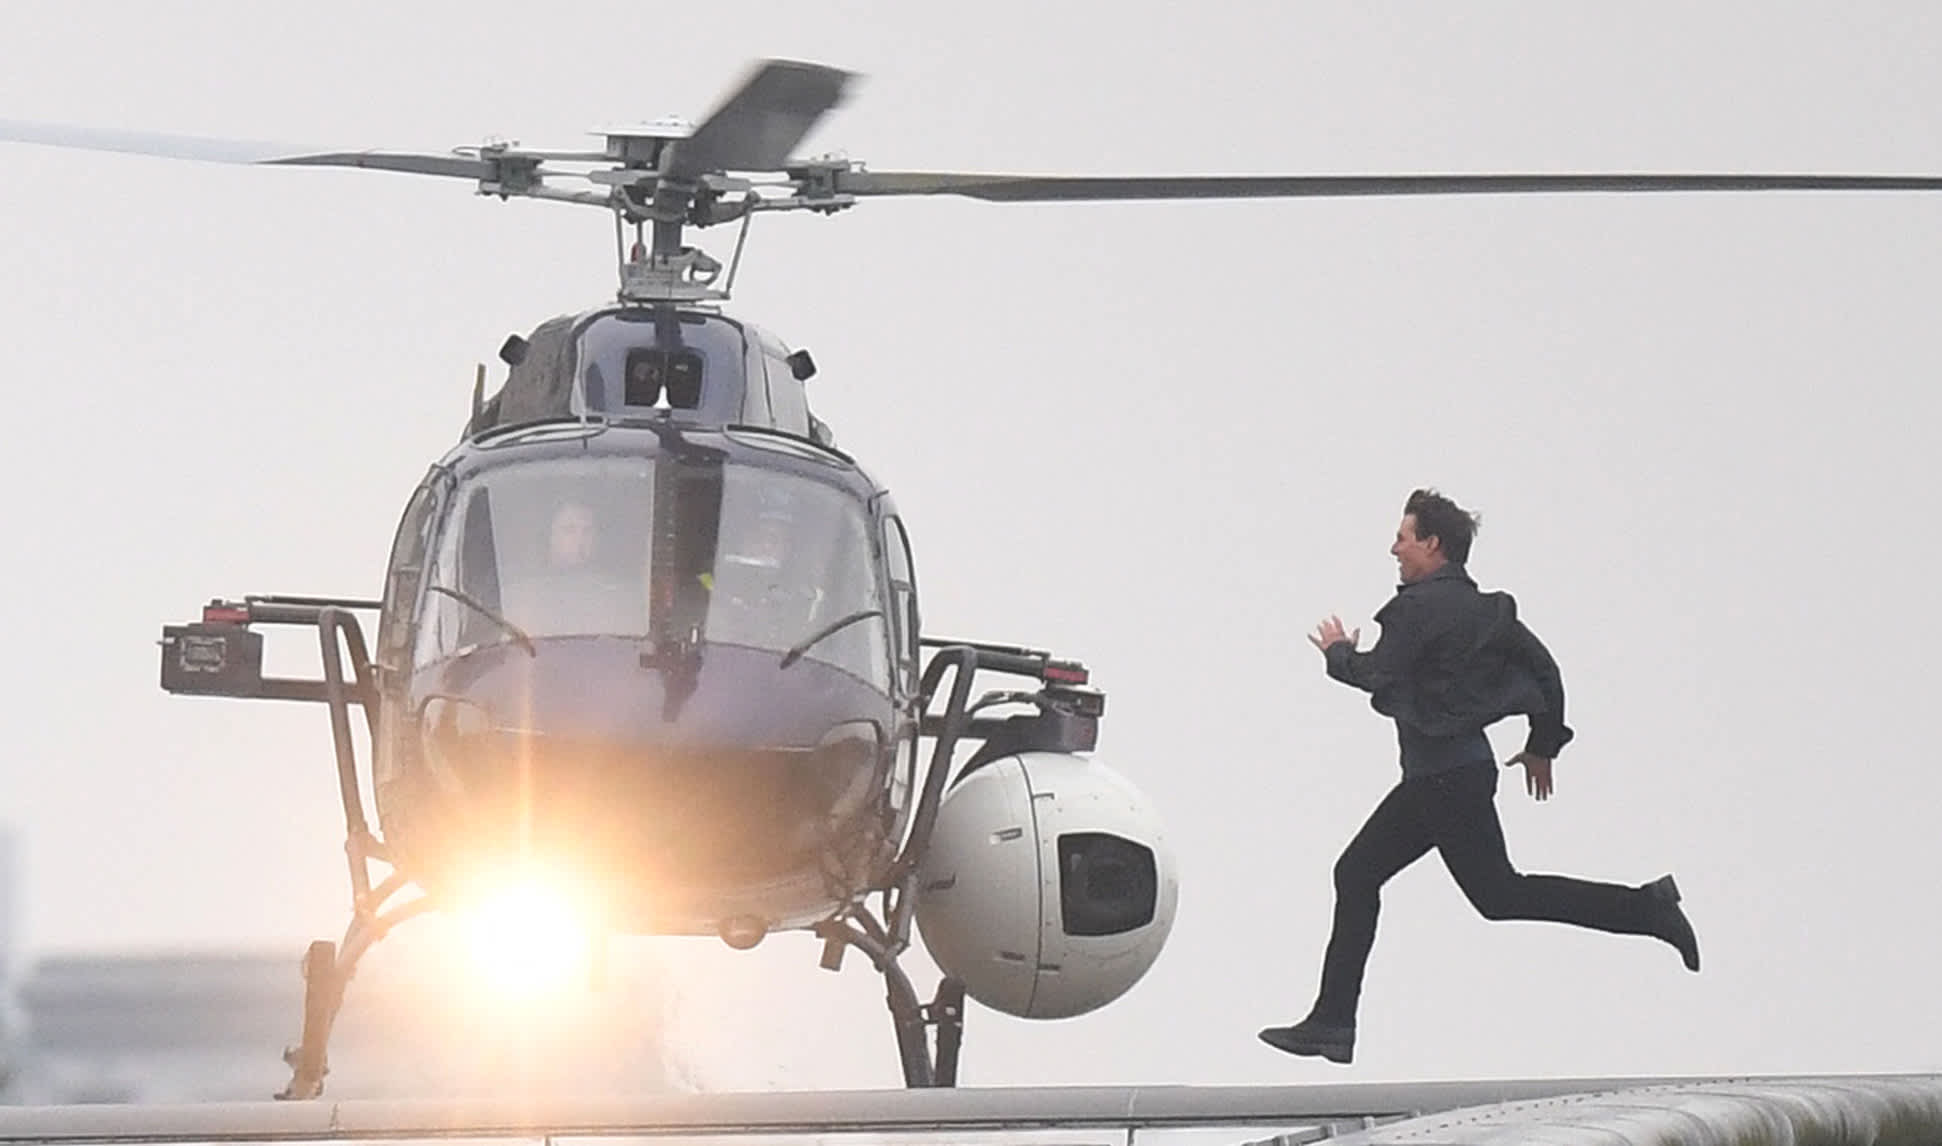 'Mission: Impossible 7' aims to restart film production in September